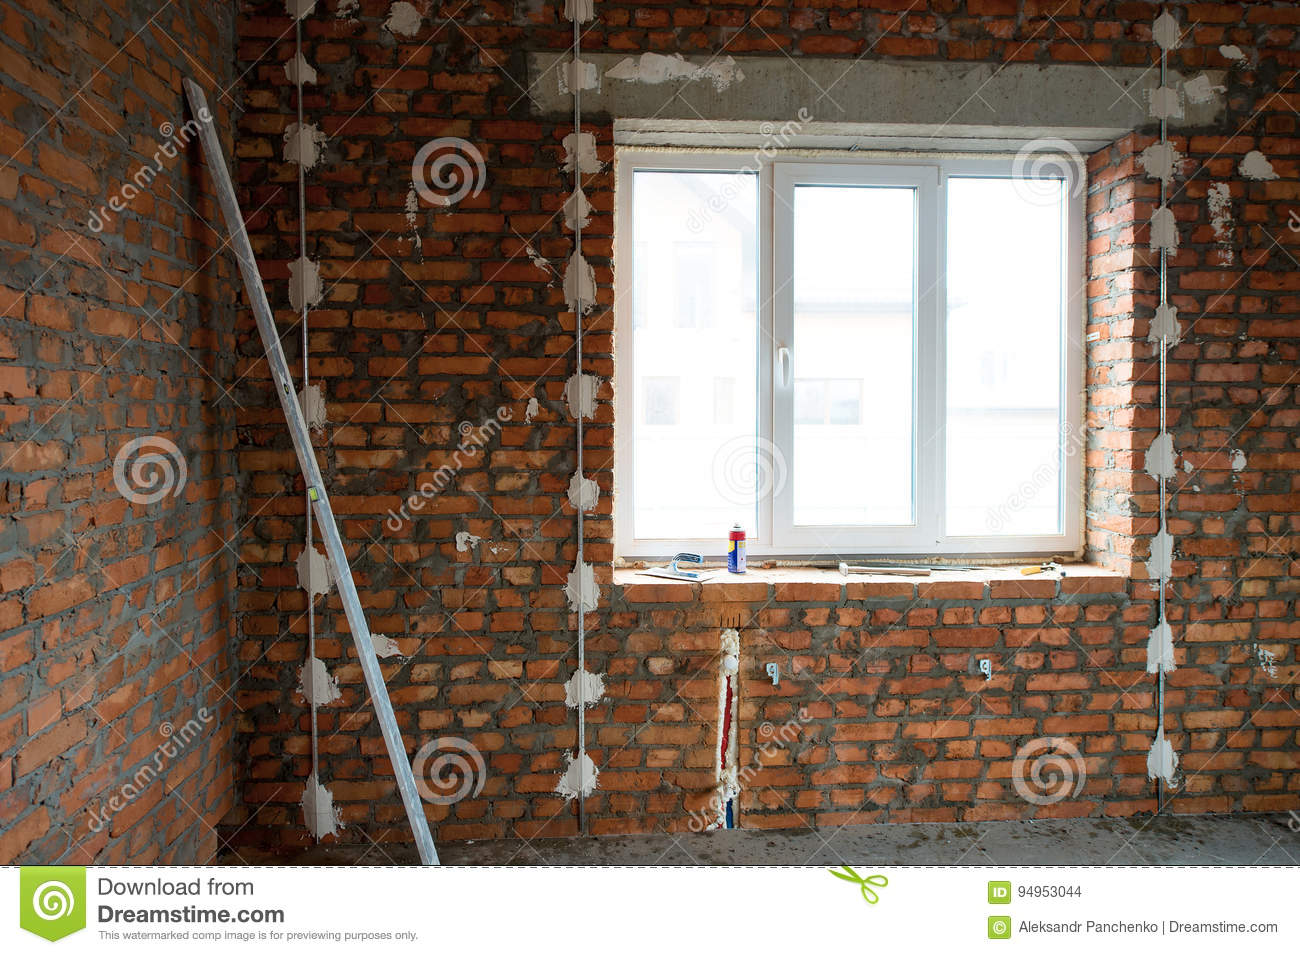 Stupendous Building House Performed Work On Electrical Wiring And Installation Wiring 101 Tzicihahutechinfo